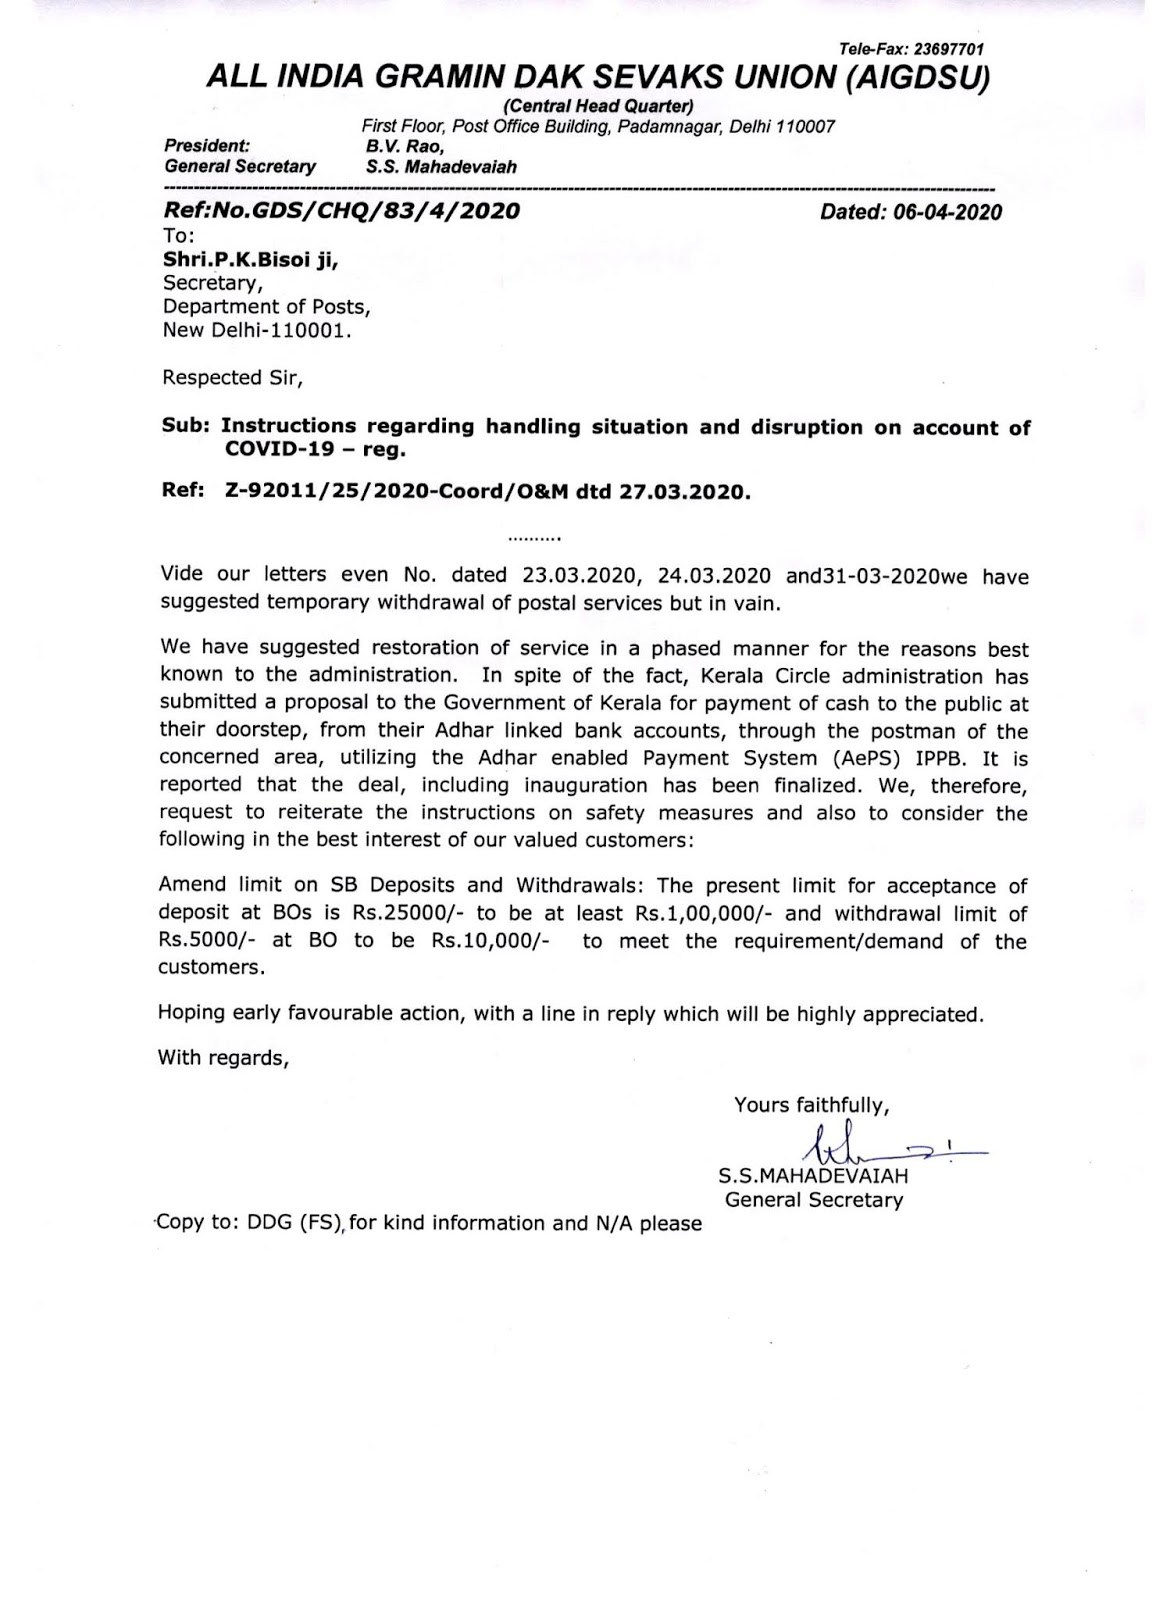 Instructions regarding handling situation and disruption on account of COVID-19 – GDS.